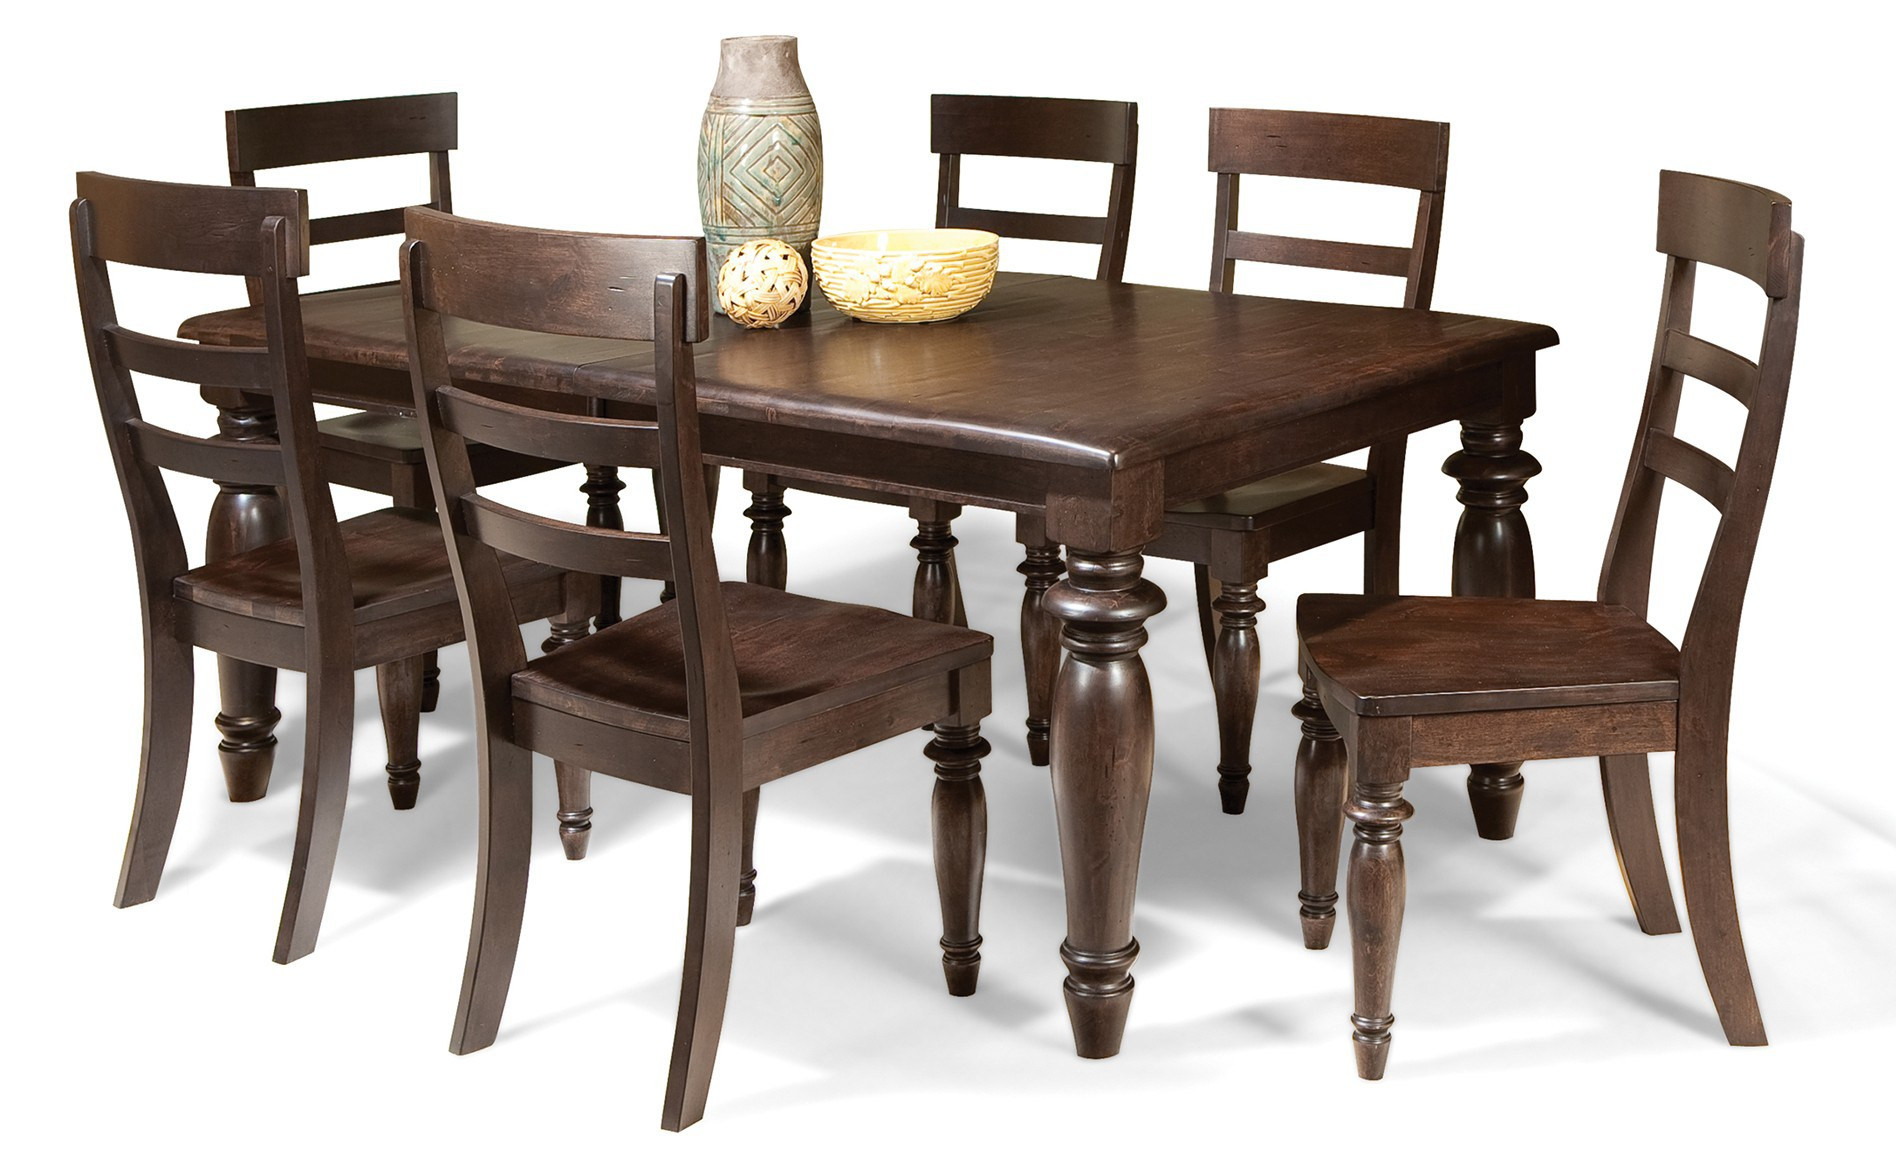 Best ideas about Wood Dining Table Set . Save or Pin 45 Wood Kitchen Tables And Chairs Sets Kitchen Chairs Now.